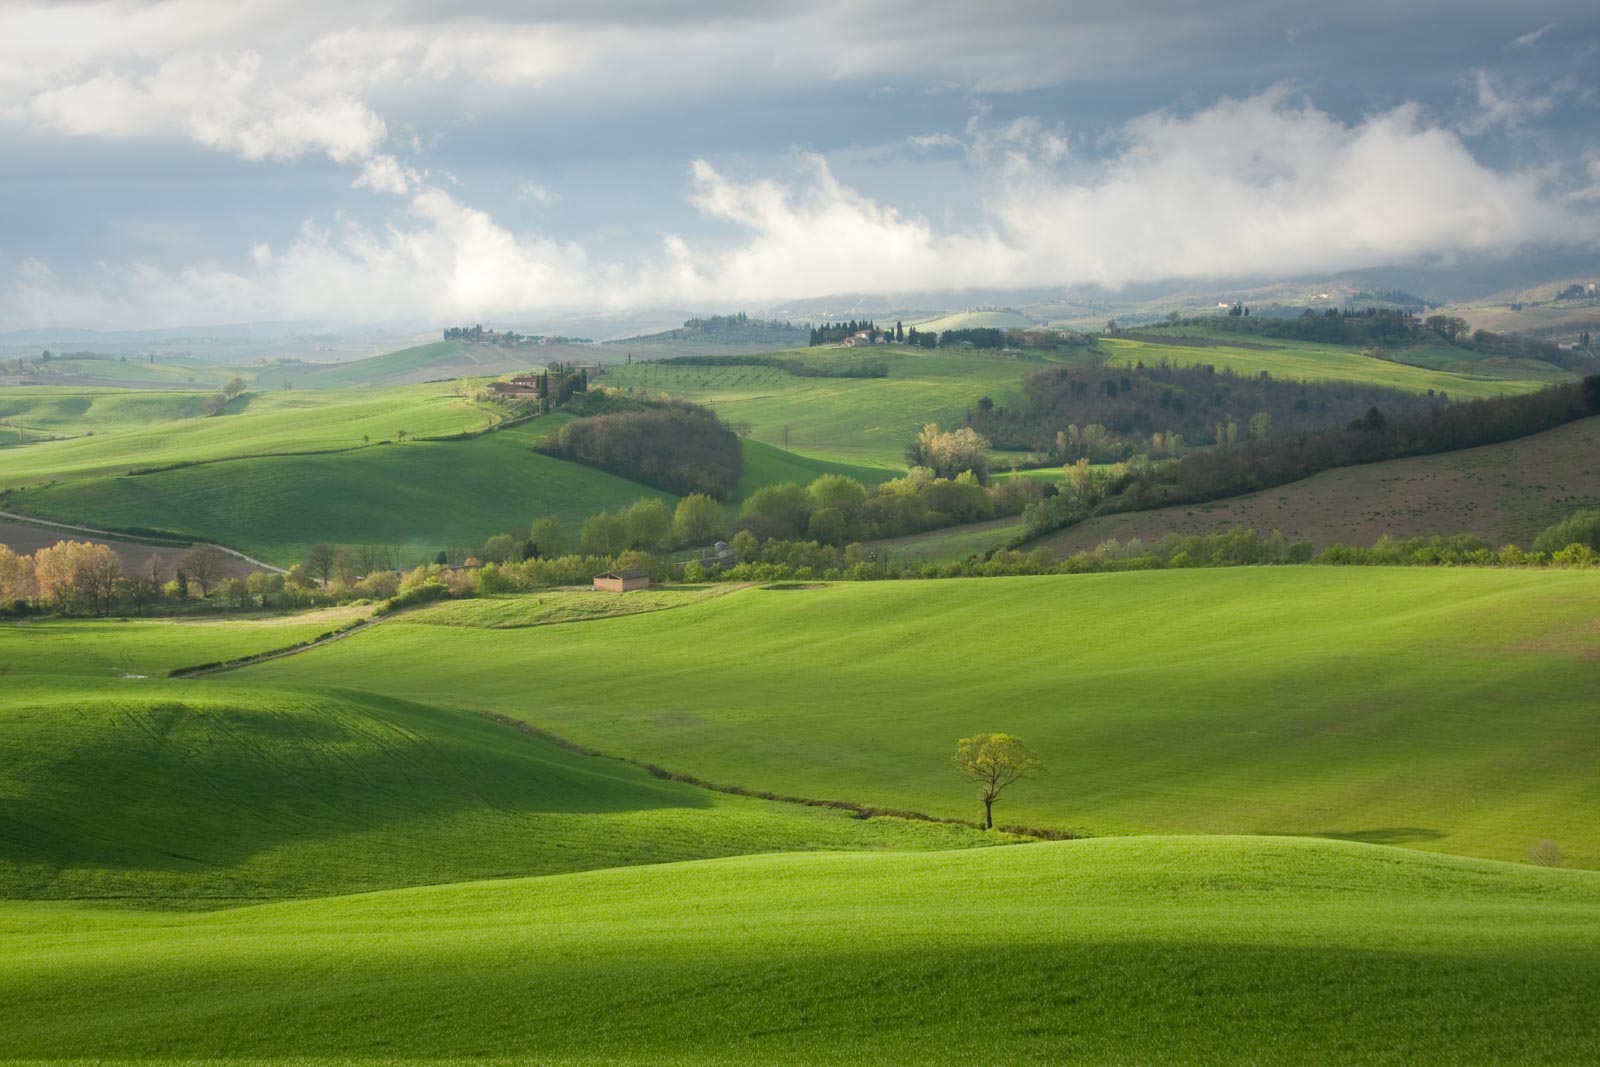 The Chianti Classico landscape near Poggibonsi — it's not all vineyards like the Langhe. ©Kevin Day/Opening a Bottle